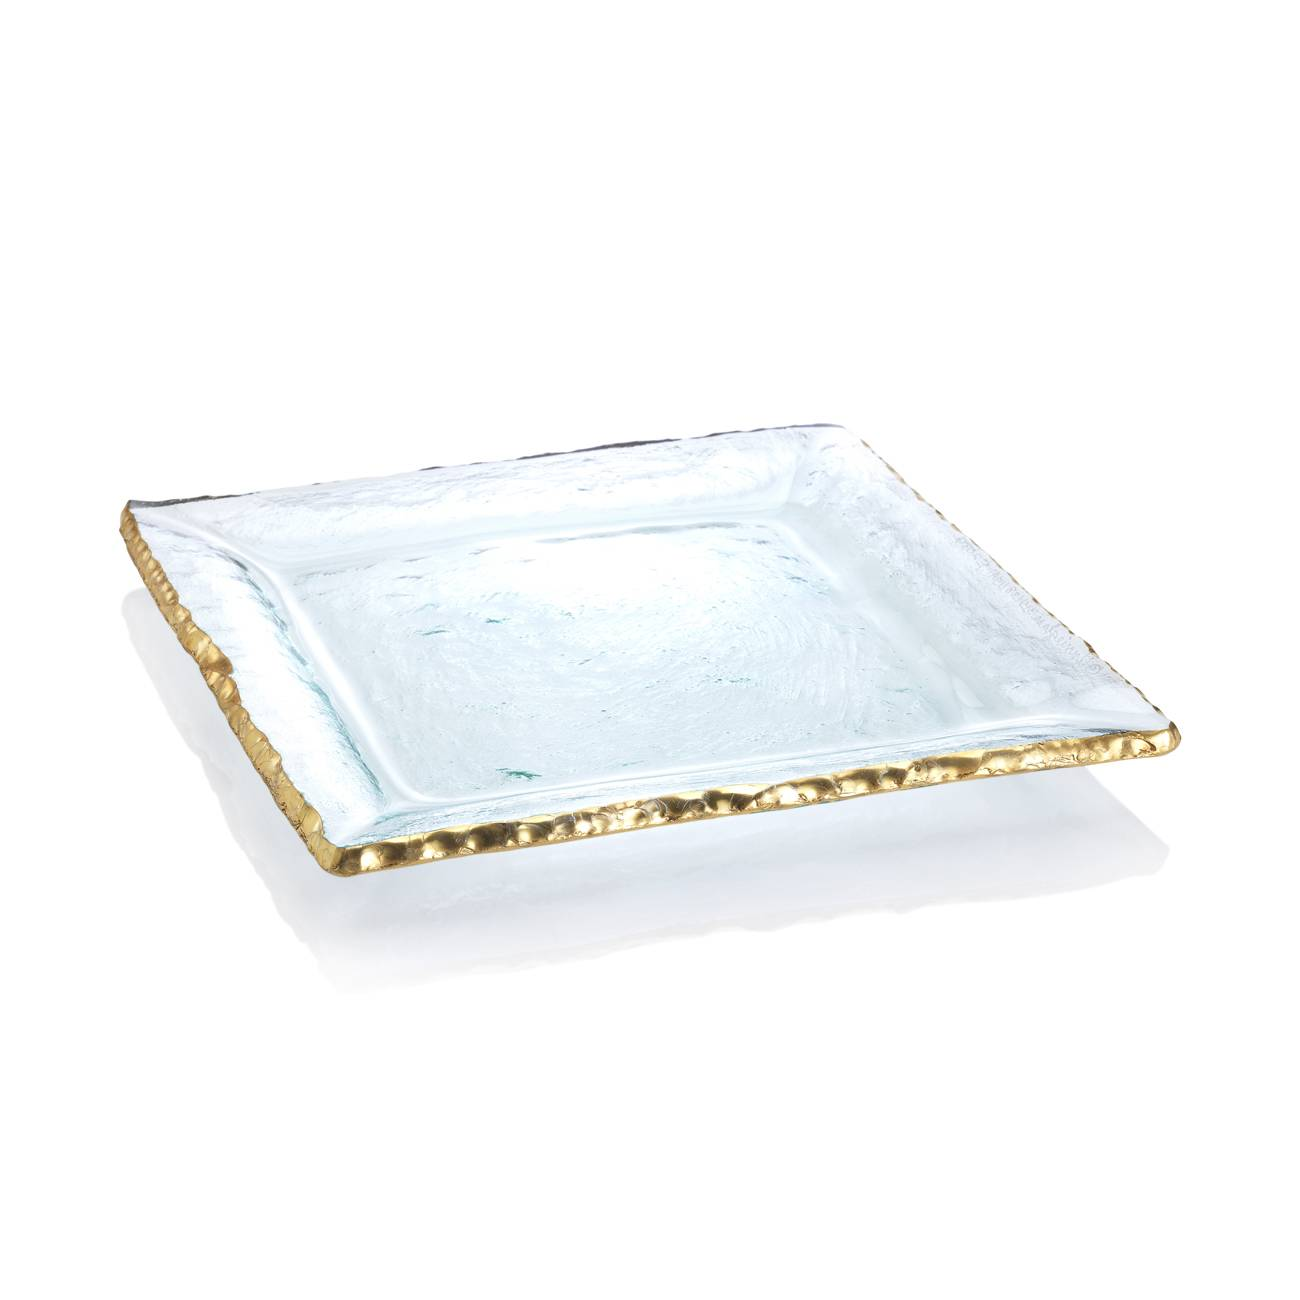 Annieglass Edgey Gold Square Platter